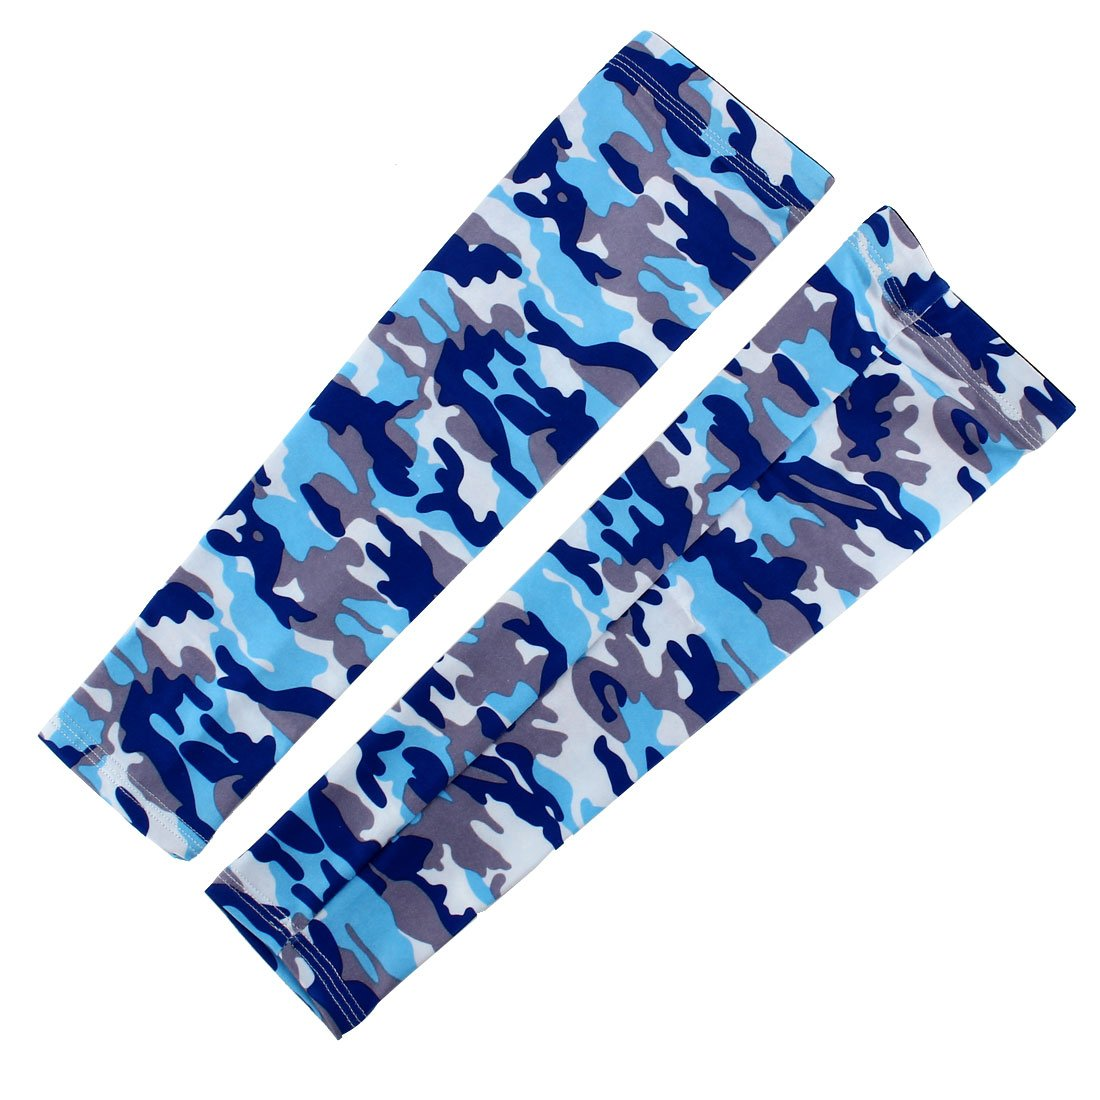 uxcell Polyester UV Protector Hands Cover Long Arm Glove Compression Outdoor Activities Skin Protection Cooling Sleeve Blue Pair a17050900ux0896